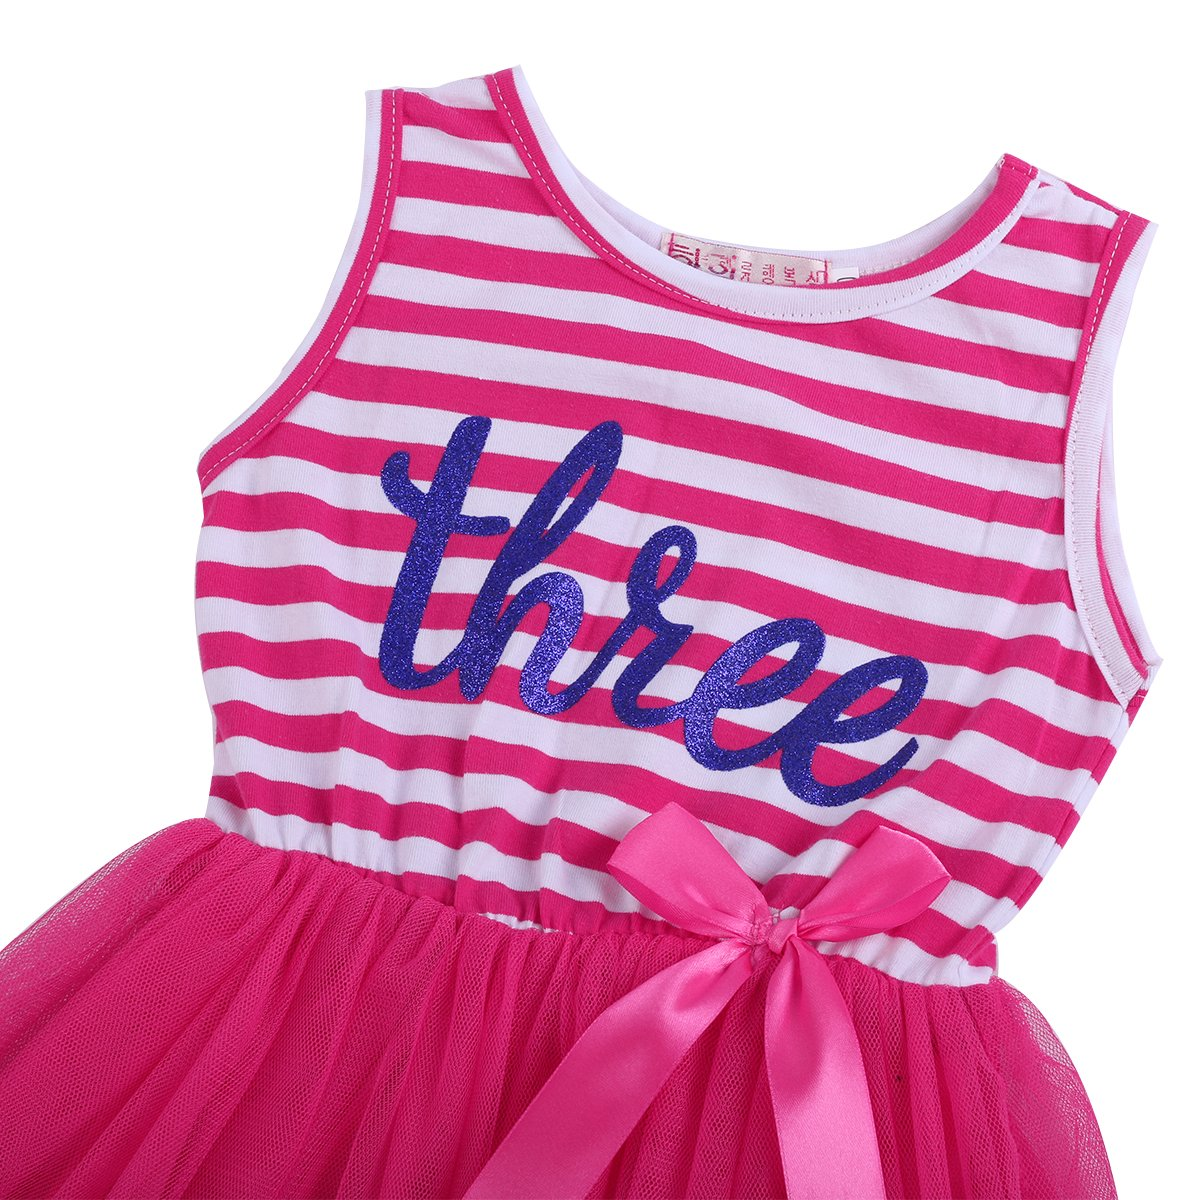 FYMNSI Infant Baby Girls Toddler Kids 1st 2nd 3rd Birthday Cake Smash Dress Princess Sleeveless Gold Glitter Crown Shiny Printed Striped Tulle Tutu Summer Dress with Bow Party Skirt Outfit Clothes